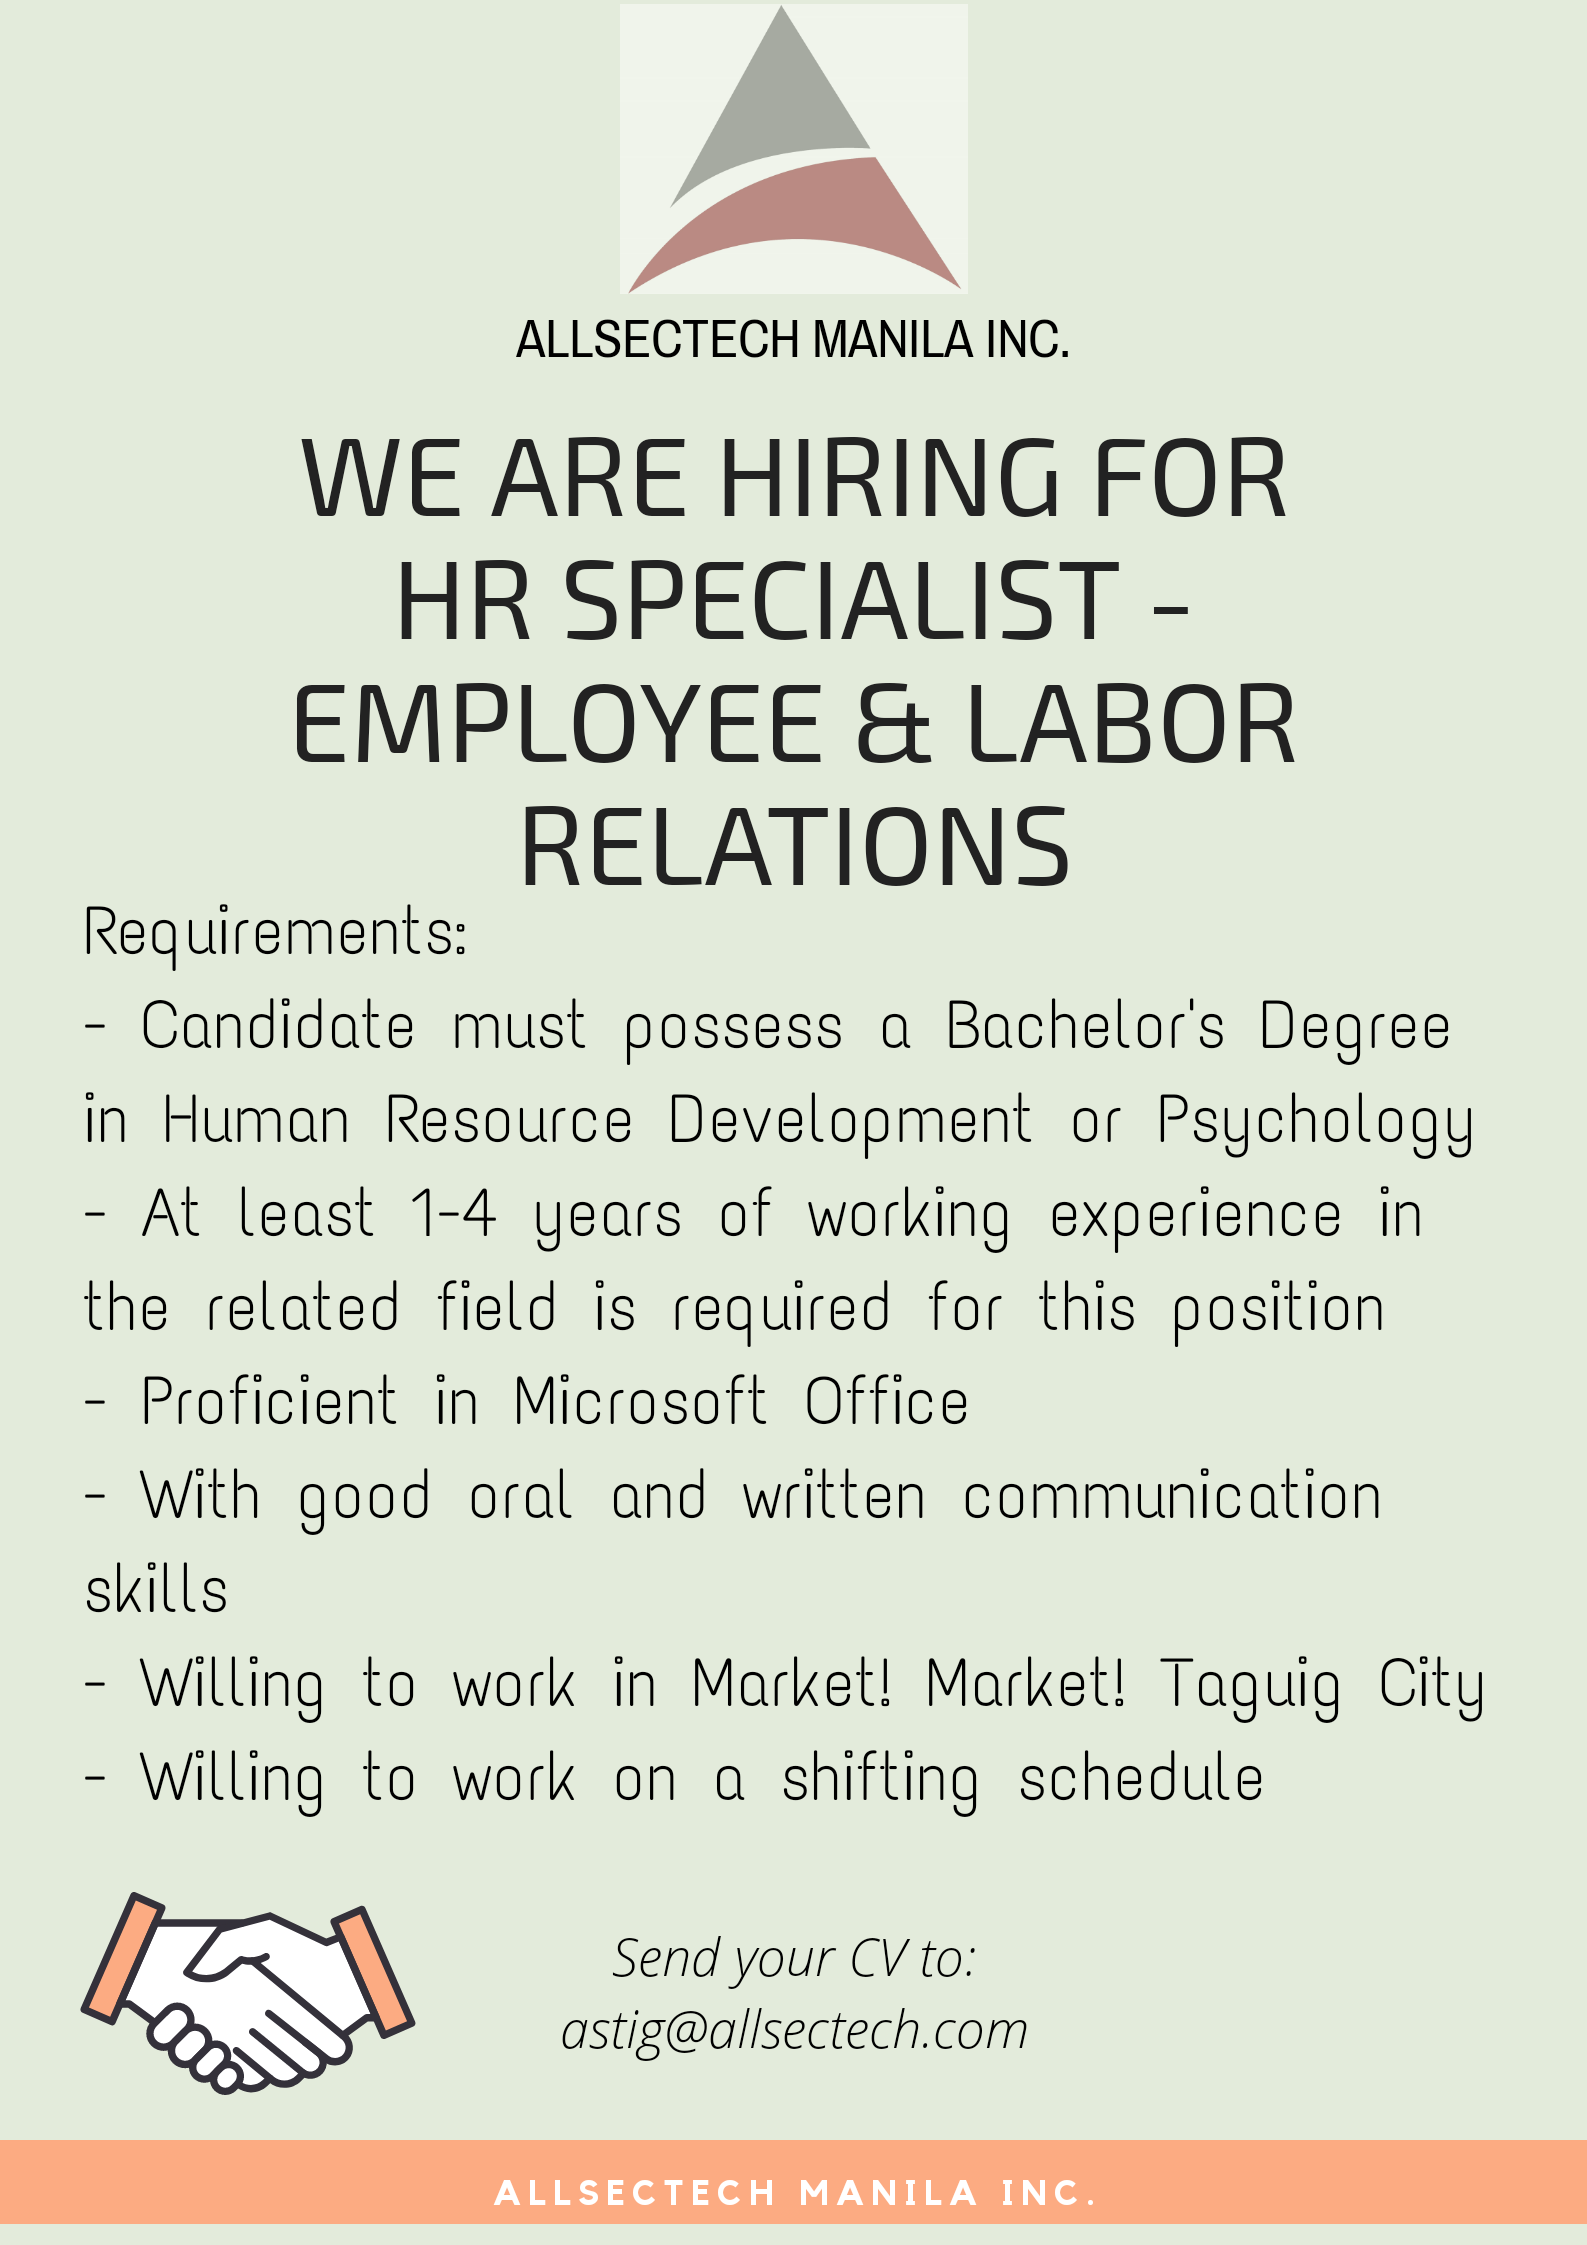 Hr Officer from Allsectech Manila Inc.